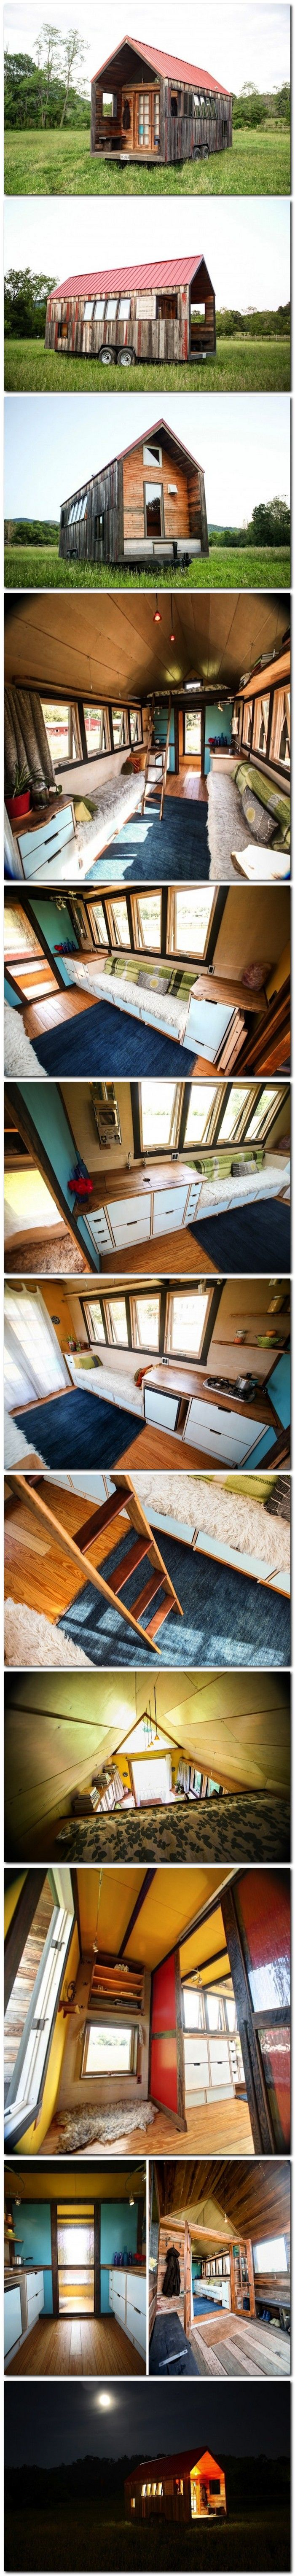 This is just to neat!! 200 Square Foot Pocket Shelter Mobile House by Aaron Maret #vintage